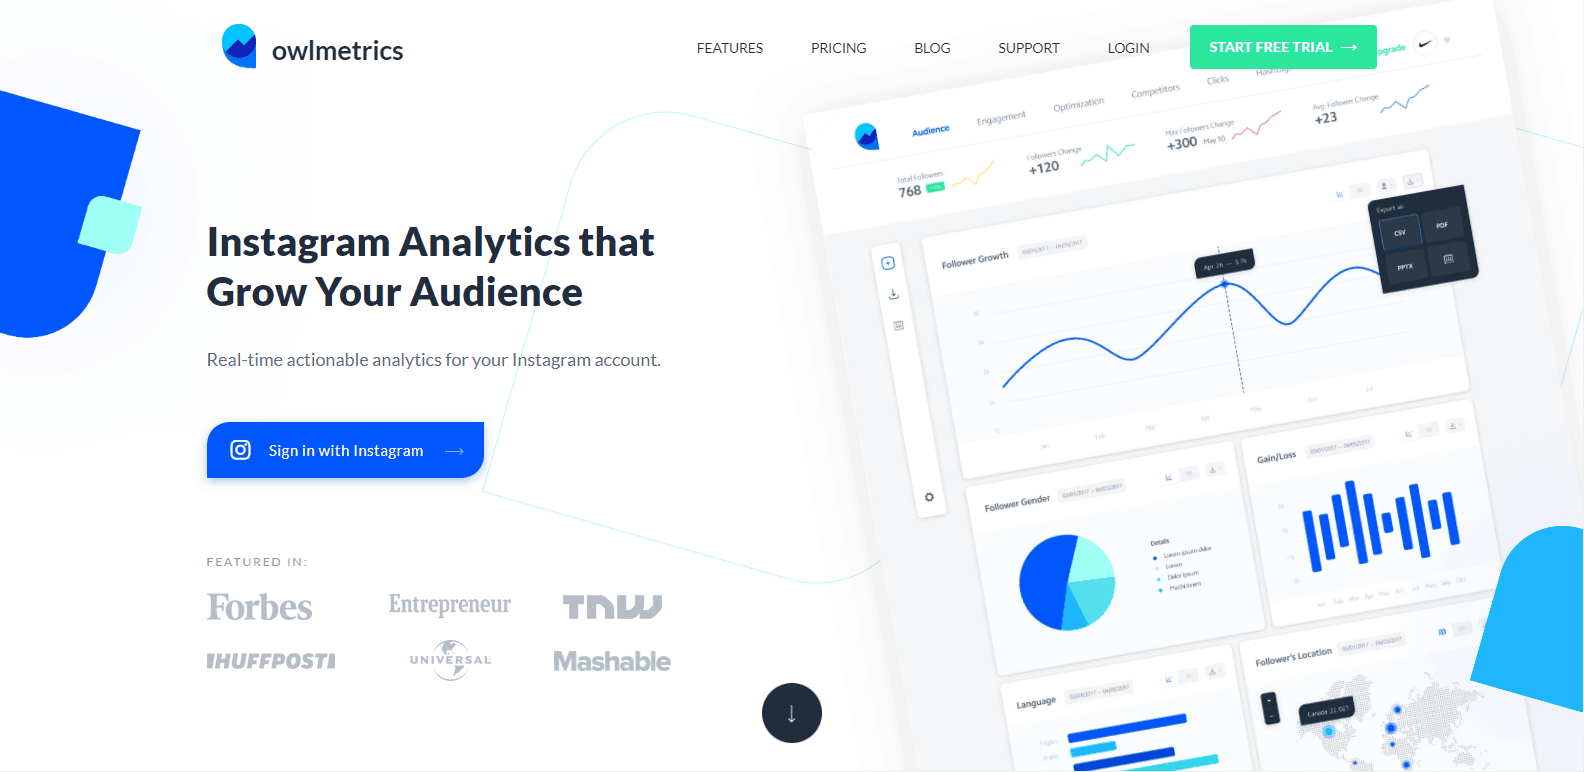 Owlmetrics Instagram Analytics Tools